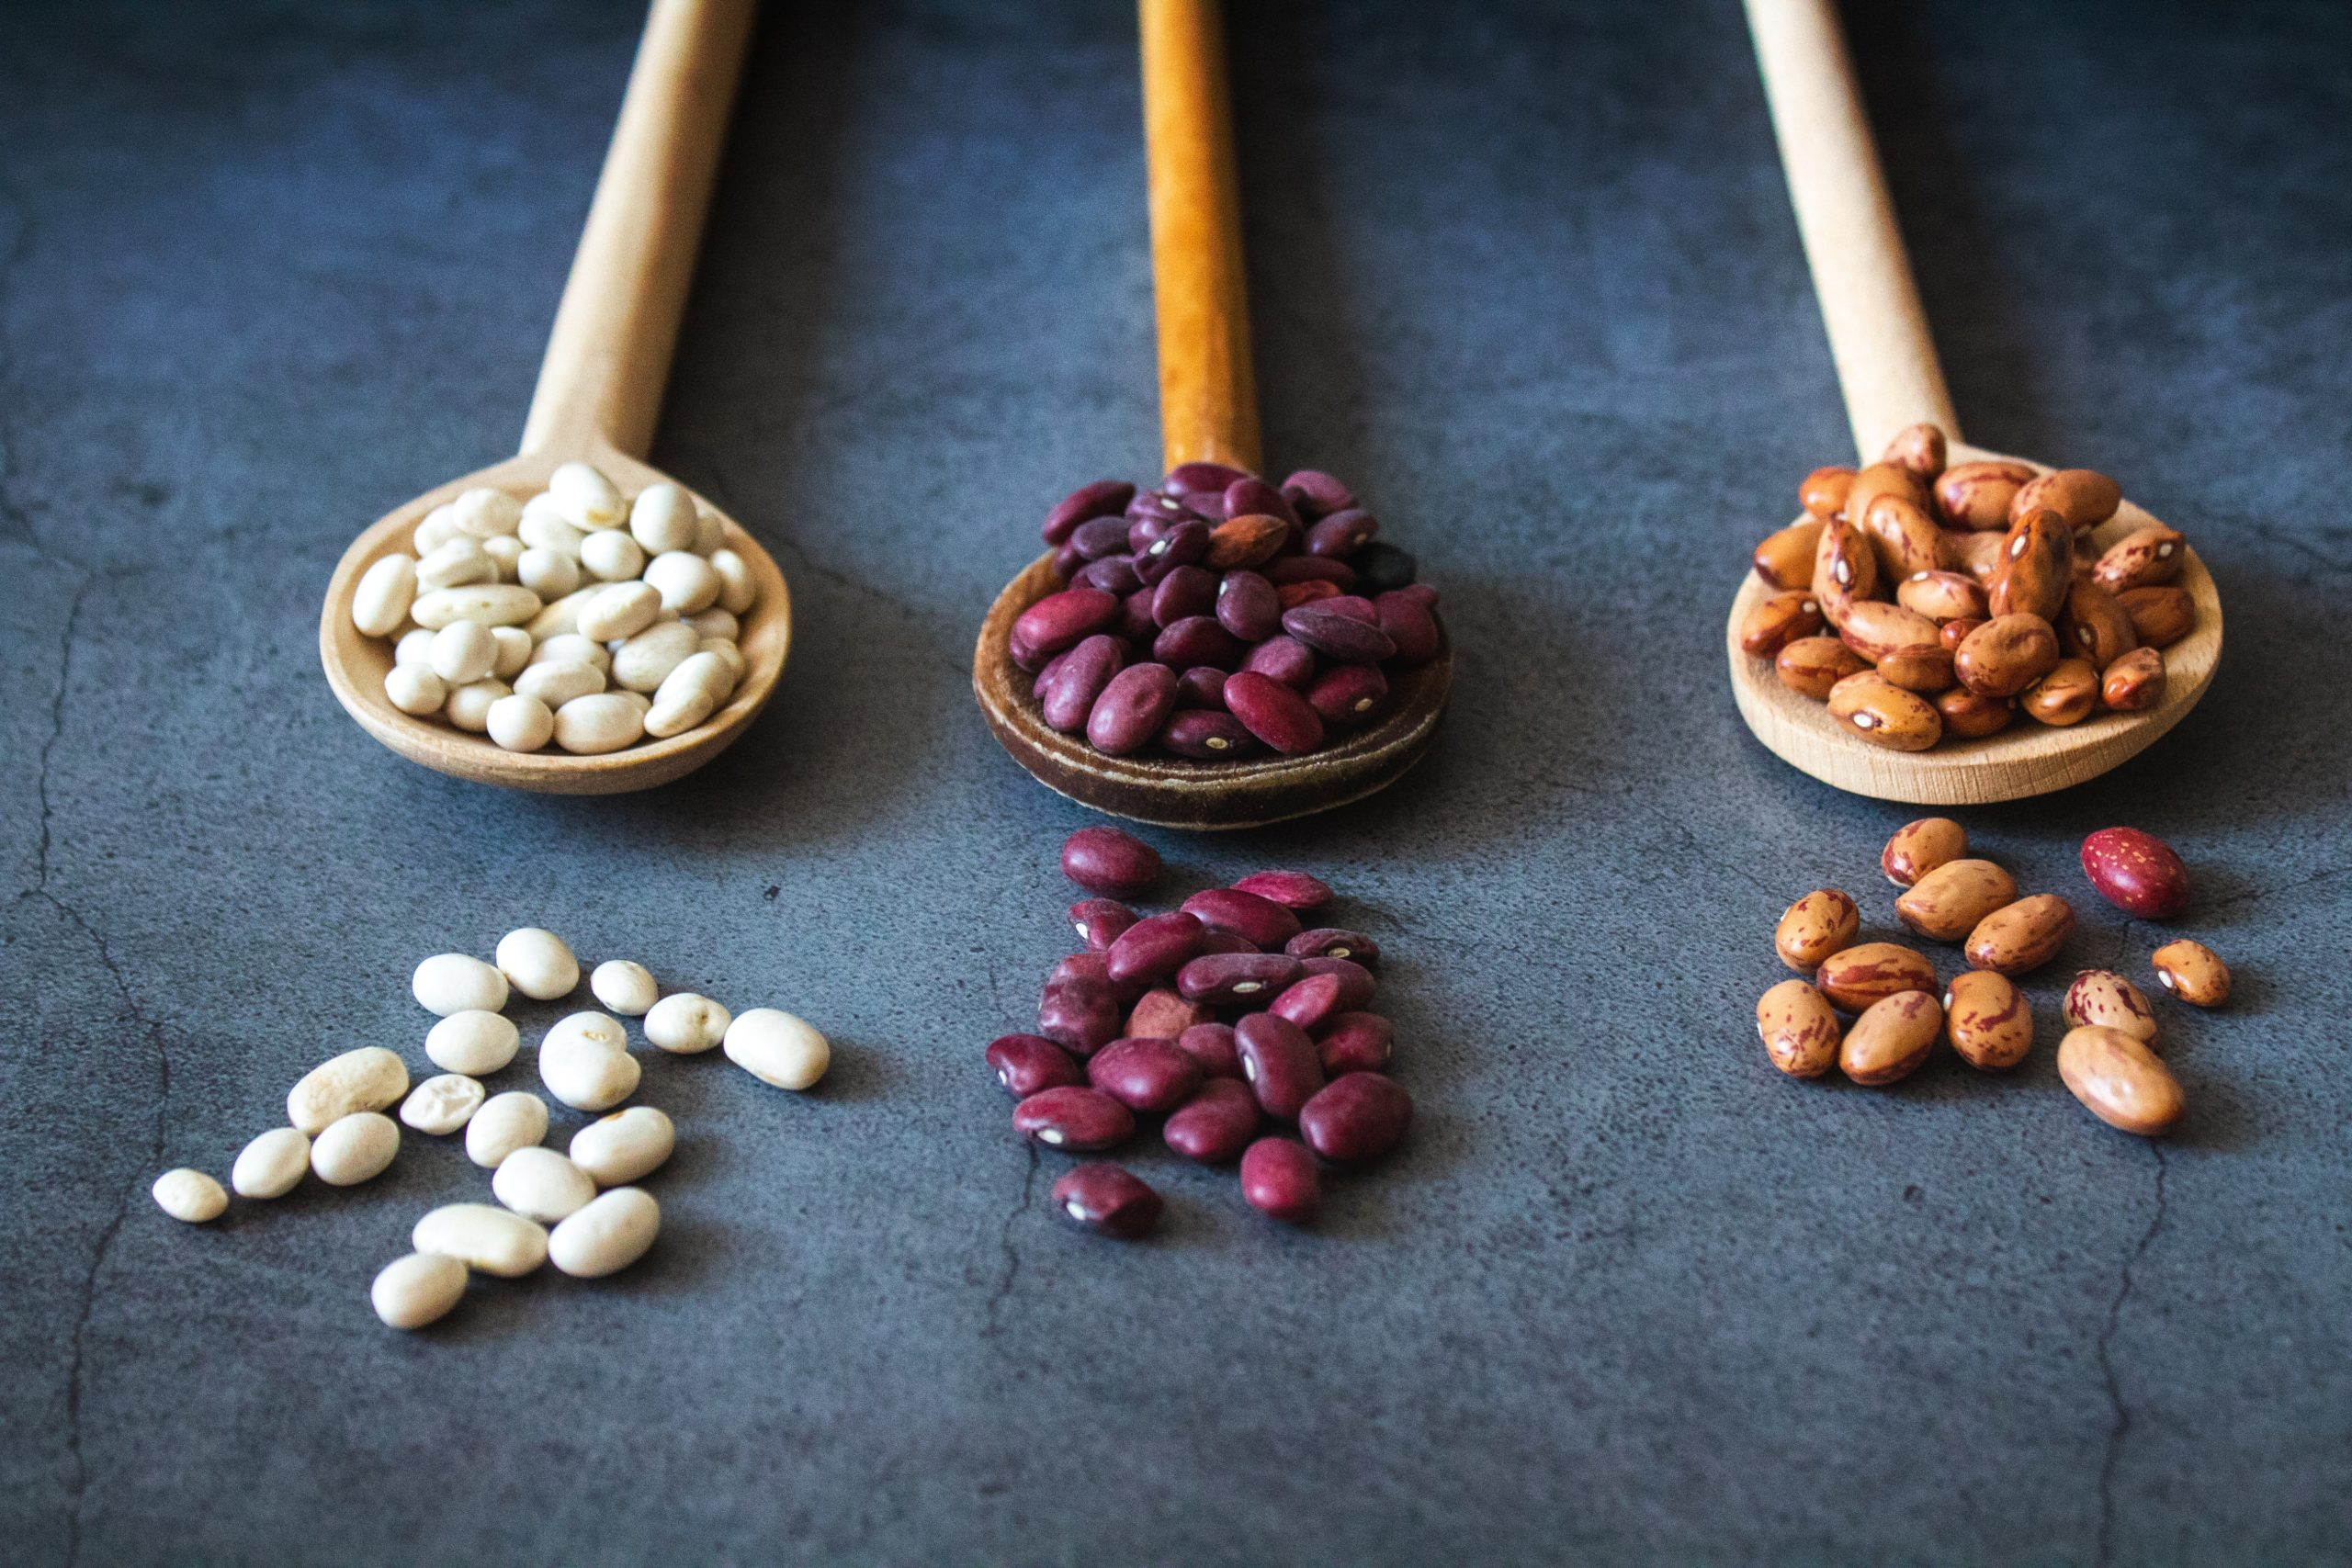 Thee wooden spoons each with dry beans in the bowl - white, black, and pinto beans